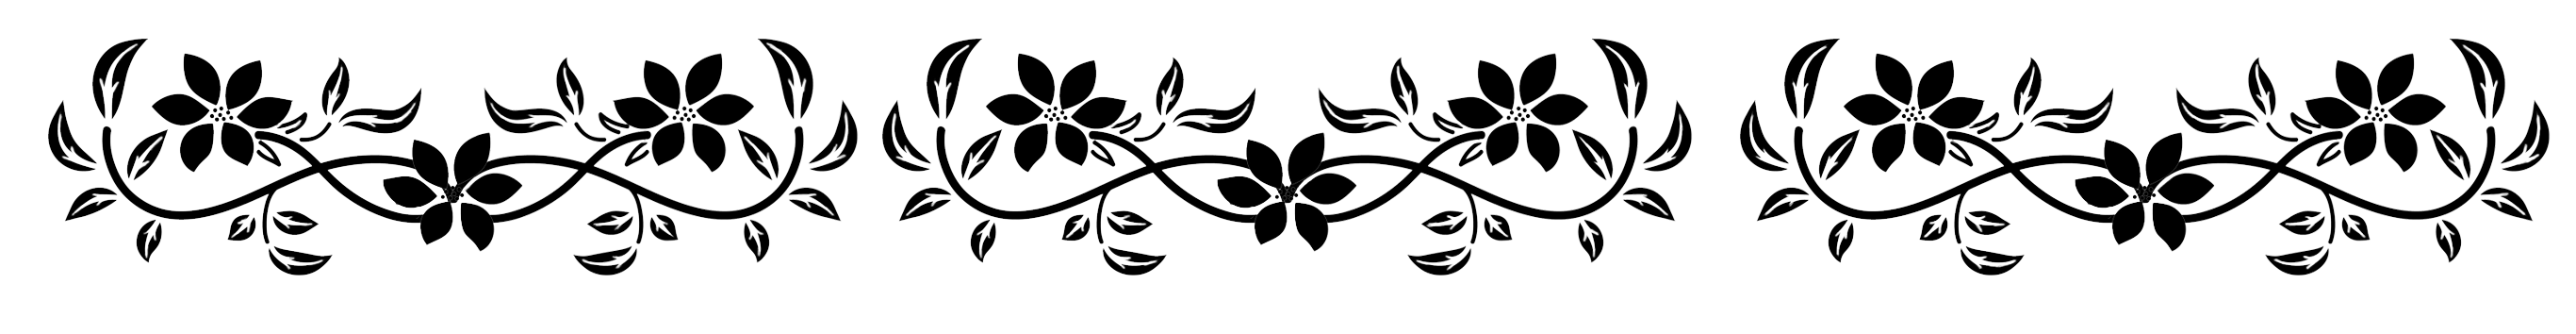 Flowers design huge wallpaper. Flower border black and white png